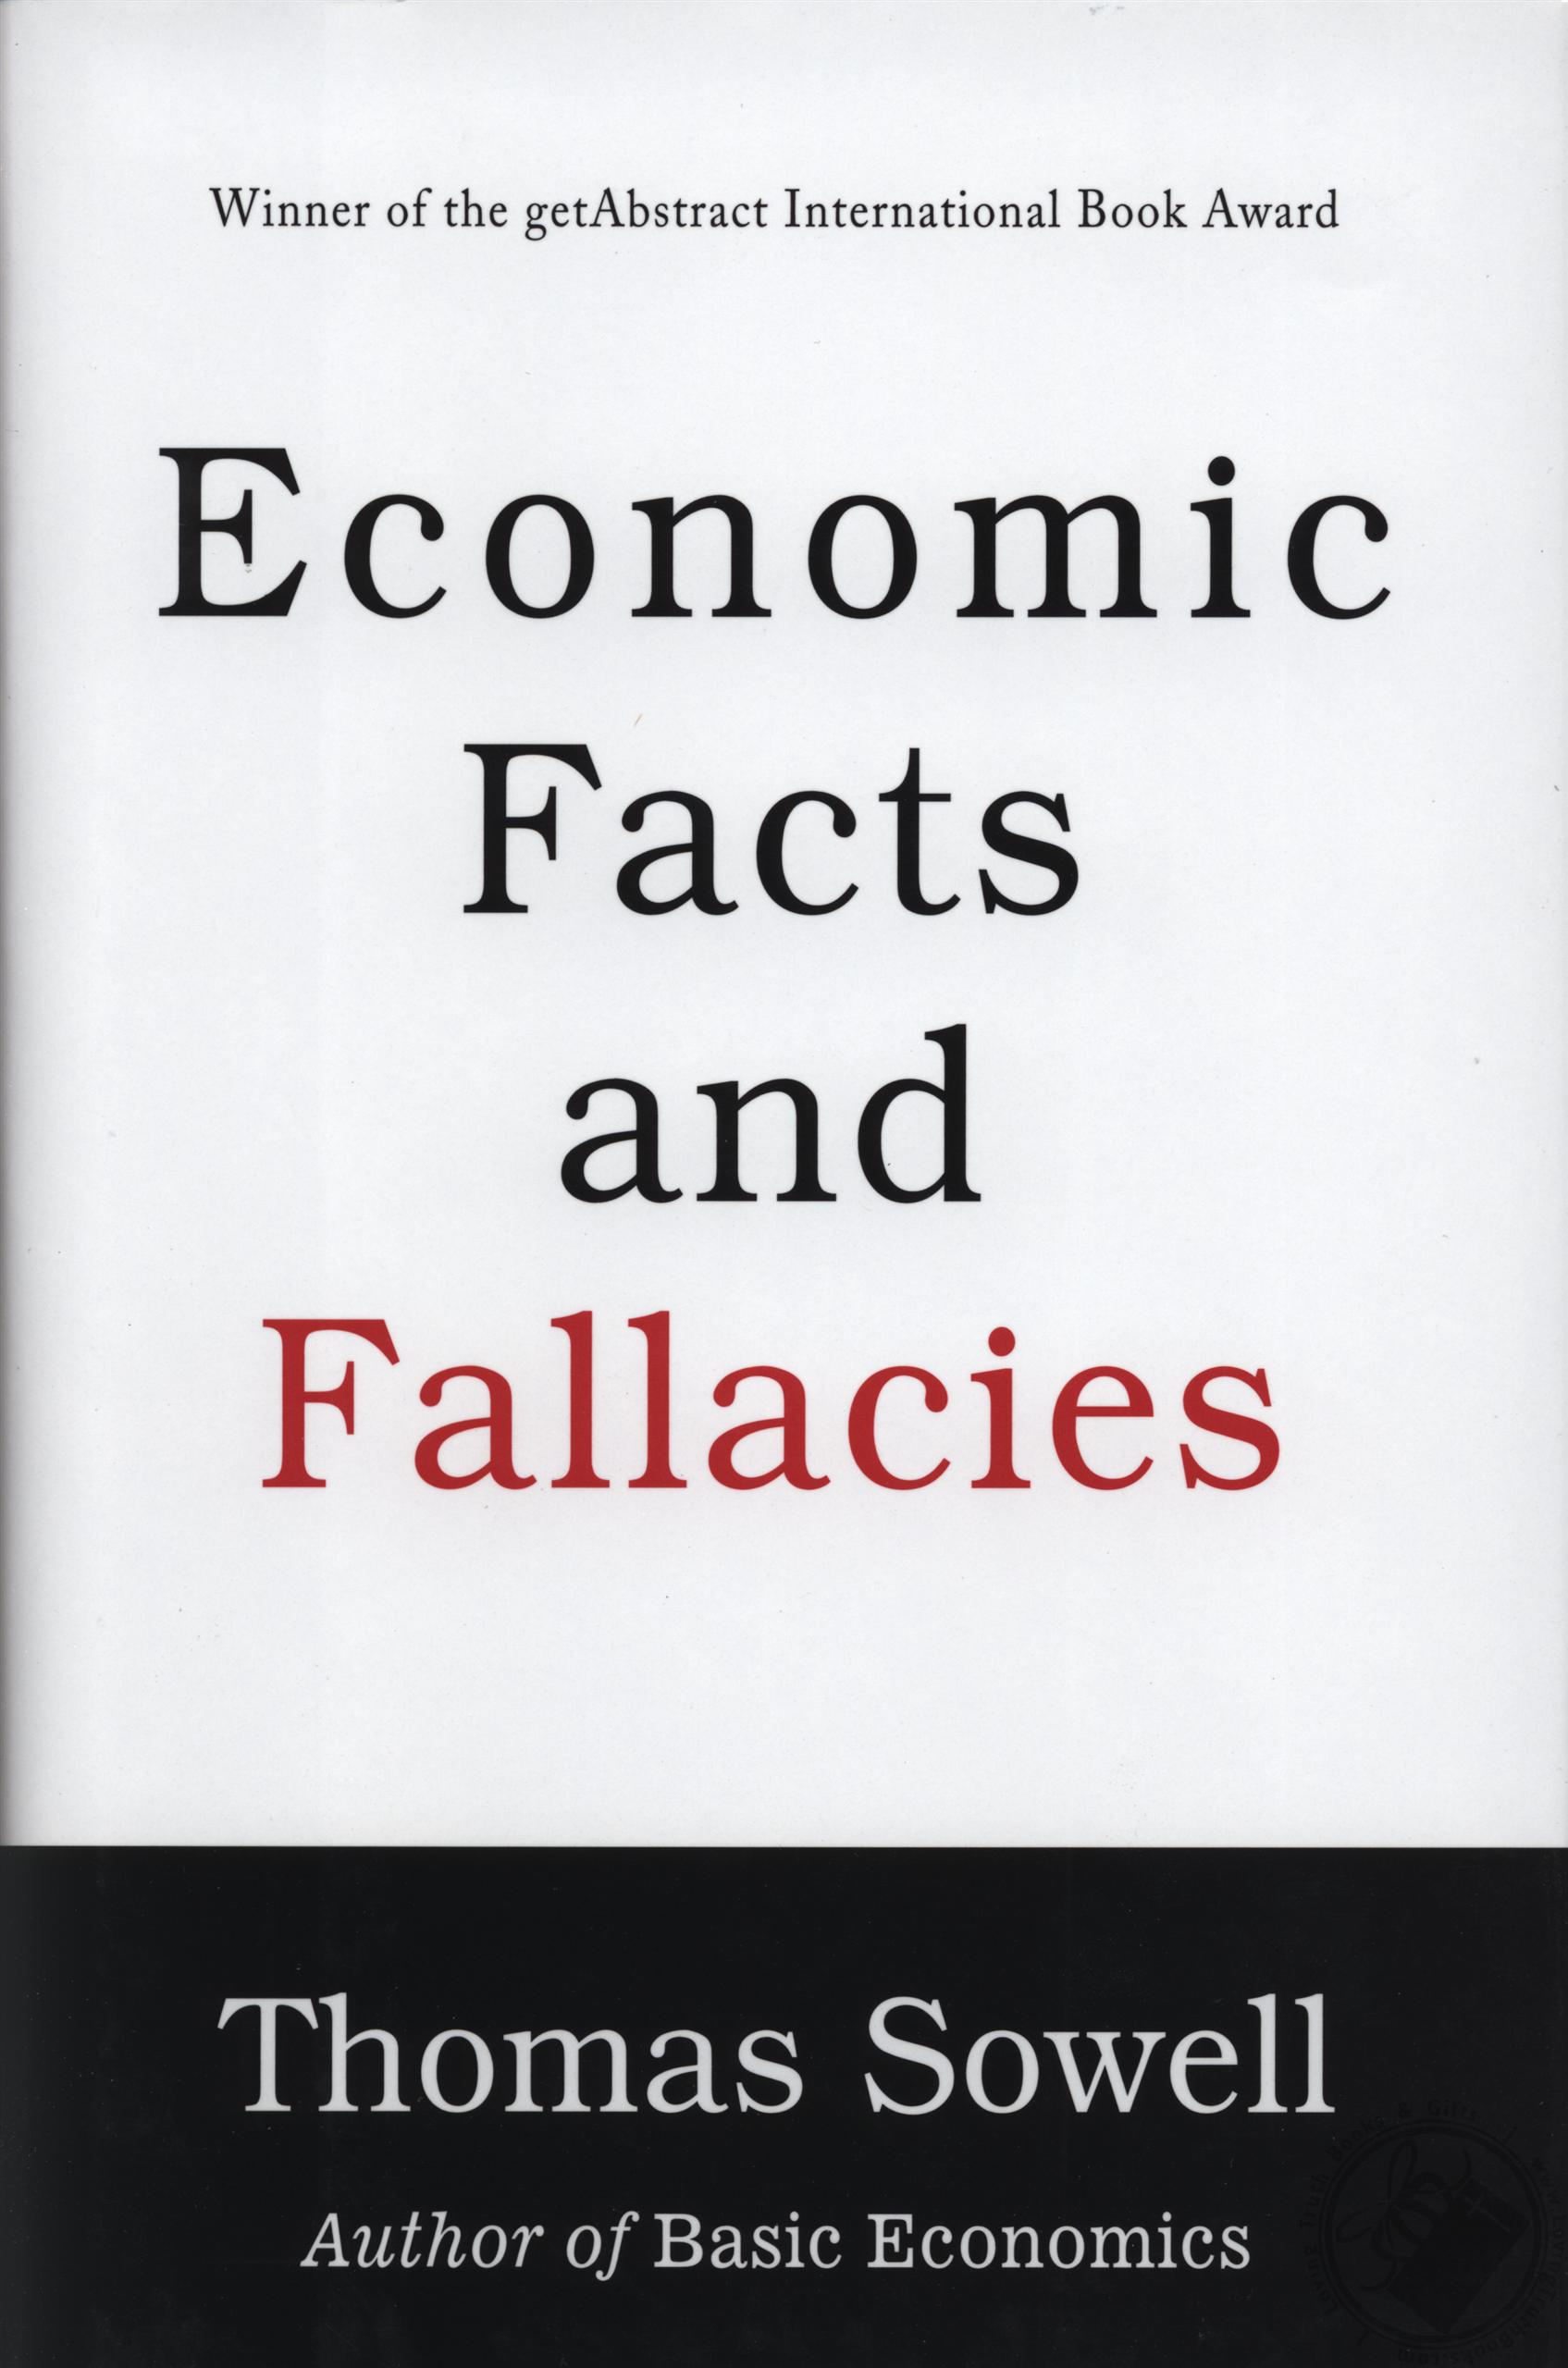 Economic Facts and Fallacies by Thomas Sowell (Book